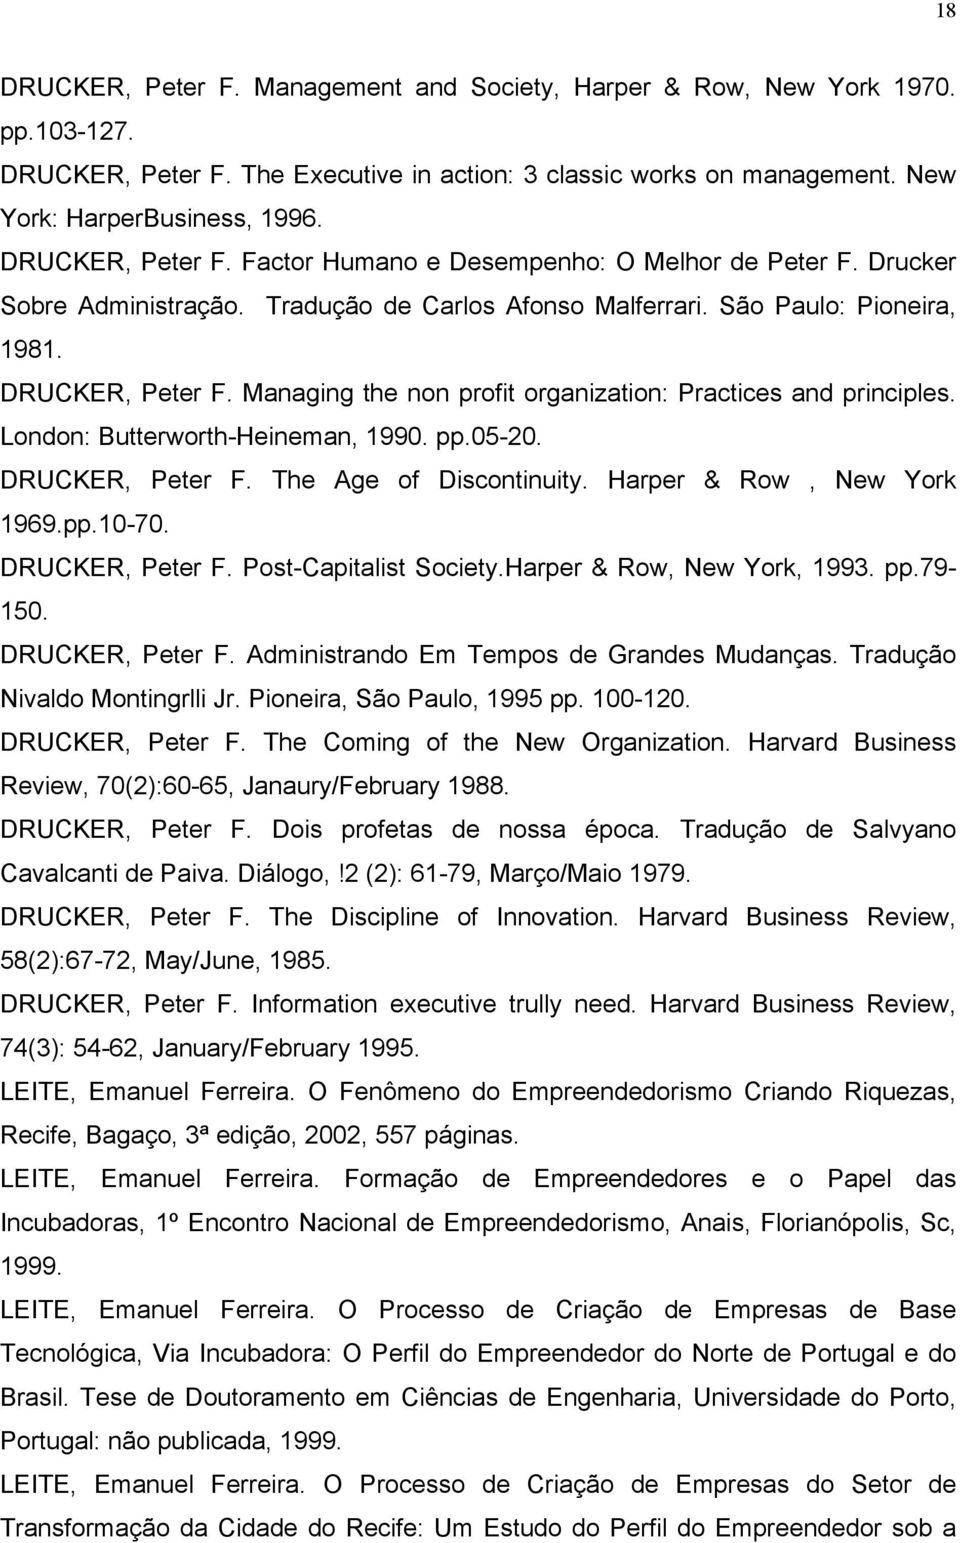 Managing the non profit organization: Practices and principles. London: Butterworth-Heineman, 1990. pp.05-20. DRUCKER, Peter F. The Age of Discontinuity. Harper & Row, New York 1969.pp.10-70.